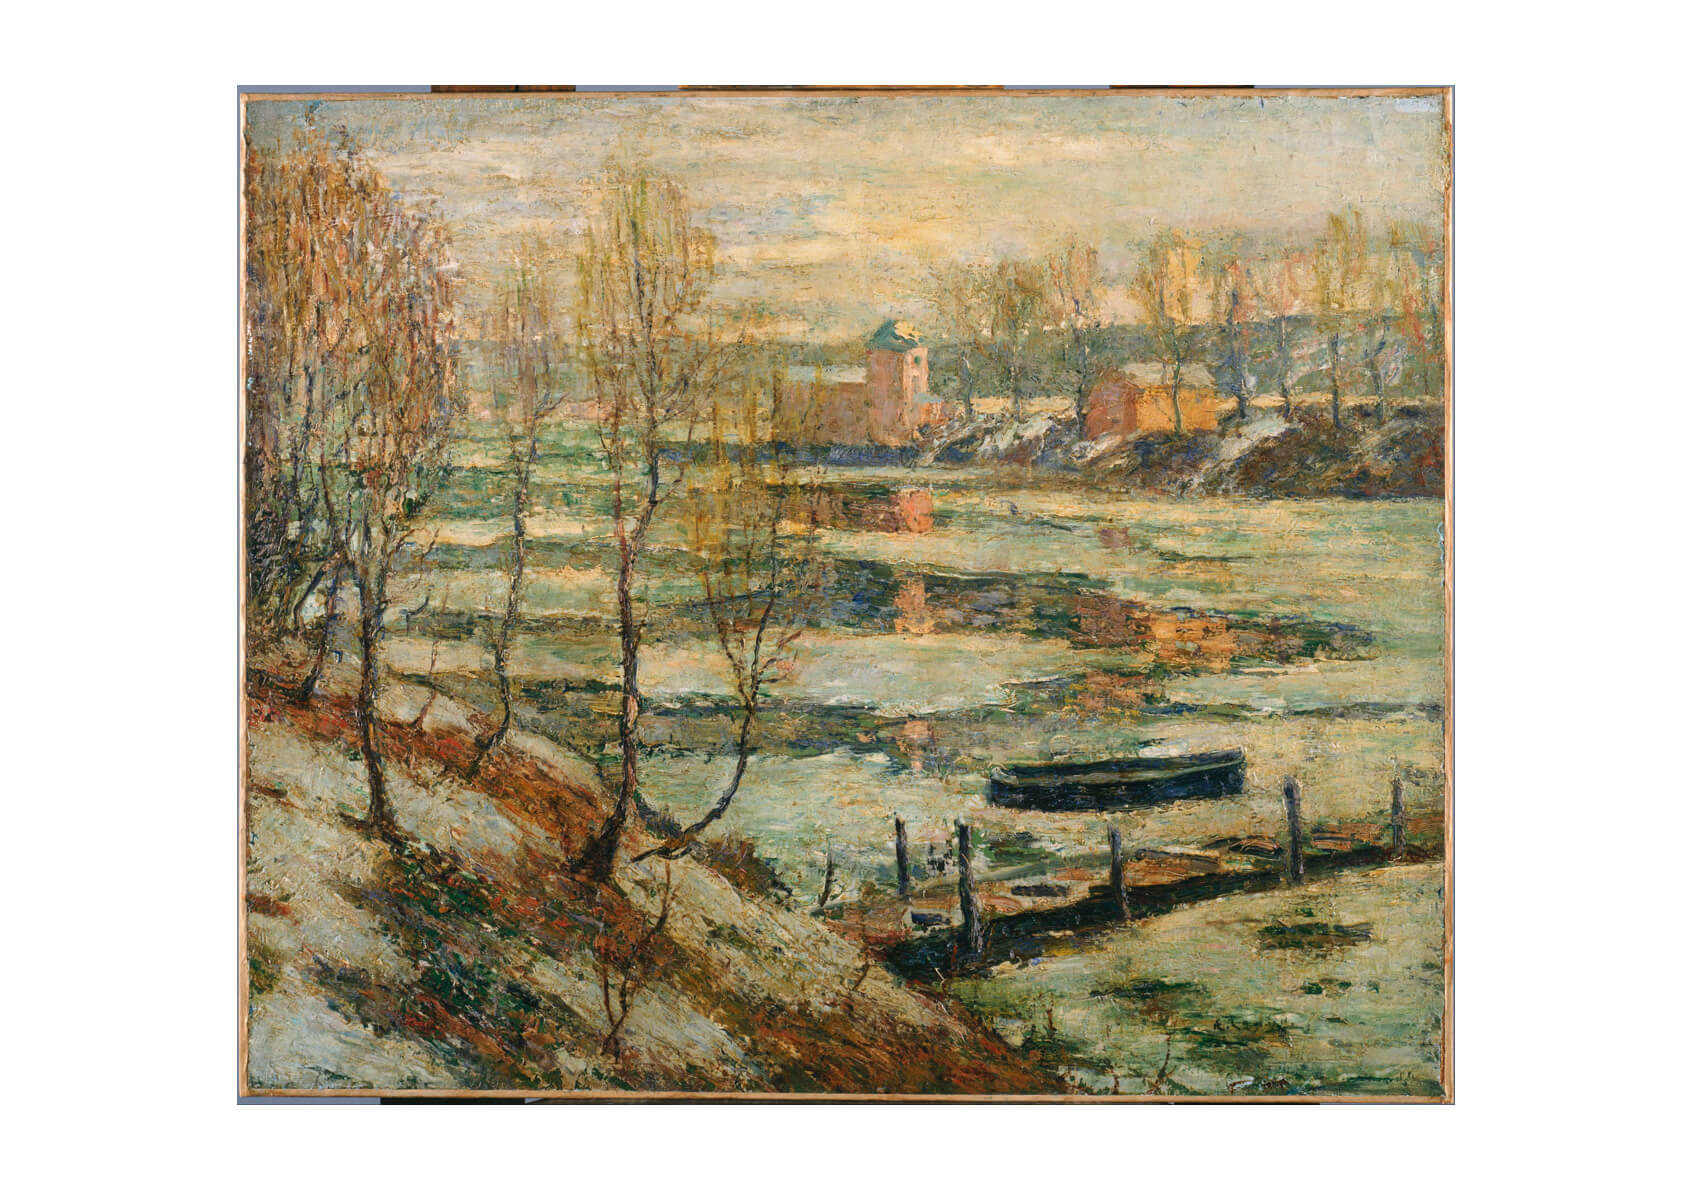 Ernest Lawson - Ice in the River